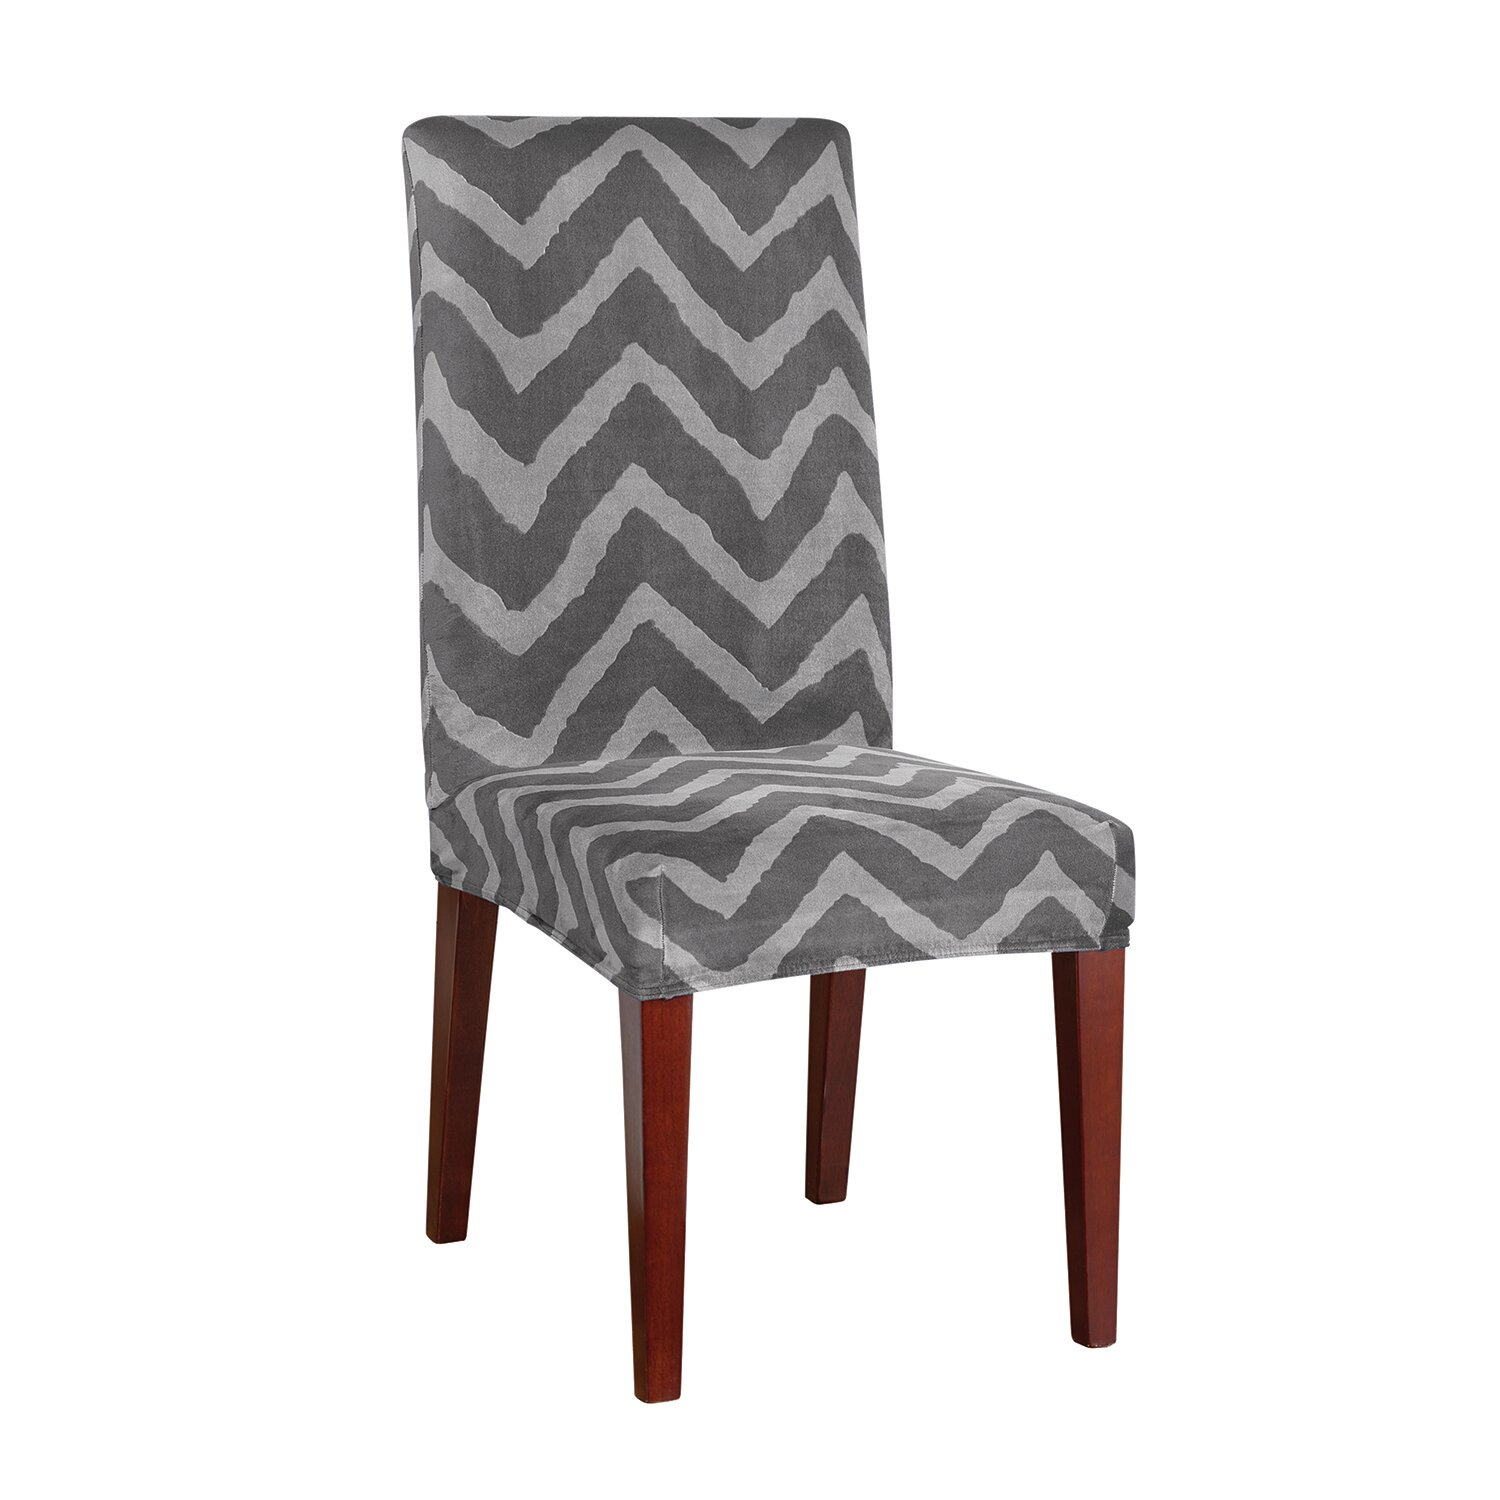 Sure Fit Stretch Chevron Dining Chair Slipcover amp Reviews  : Sure Fit Knit Dining Shorty Room Chair Cover 0472934468 from www.wayfair.com size 1500 x 1500 jpeg 202kB